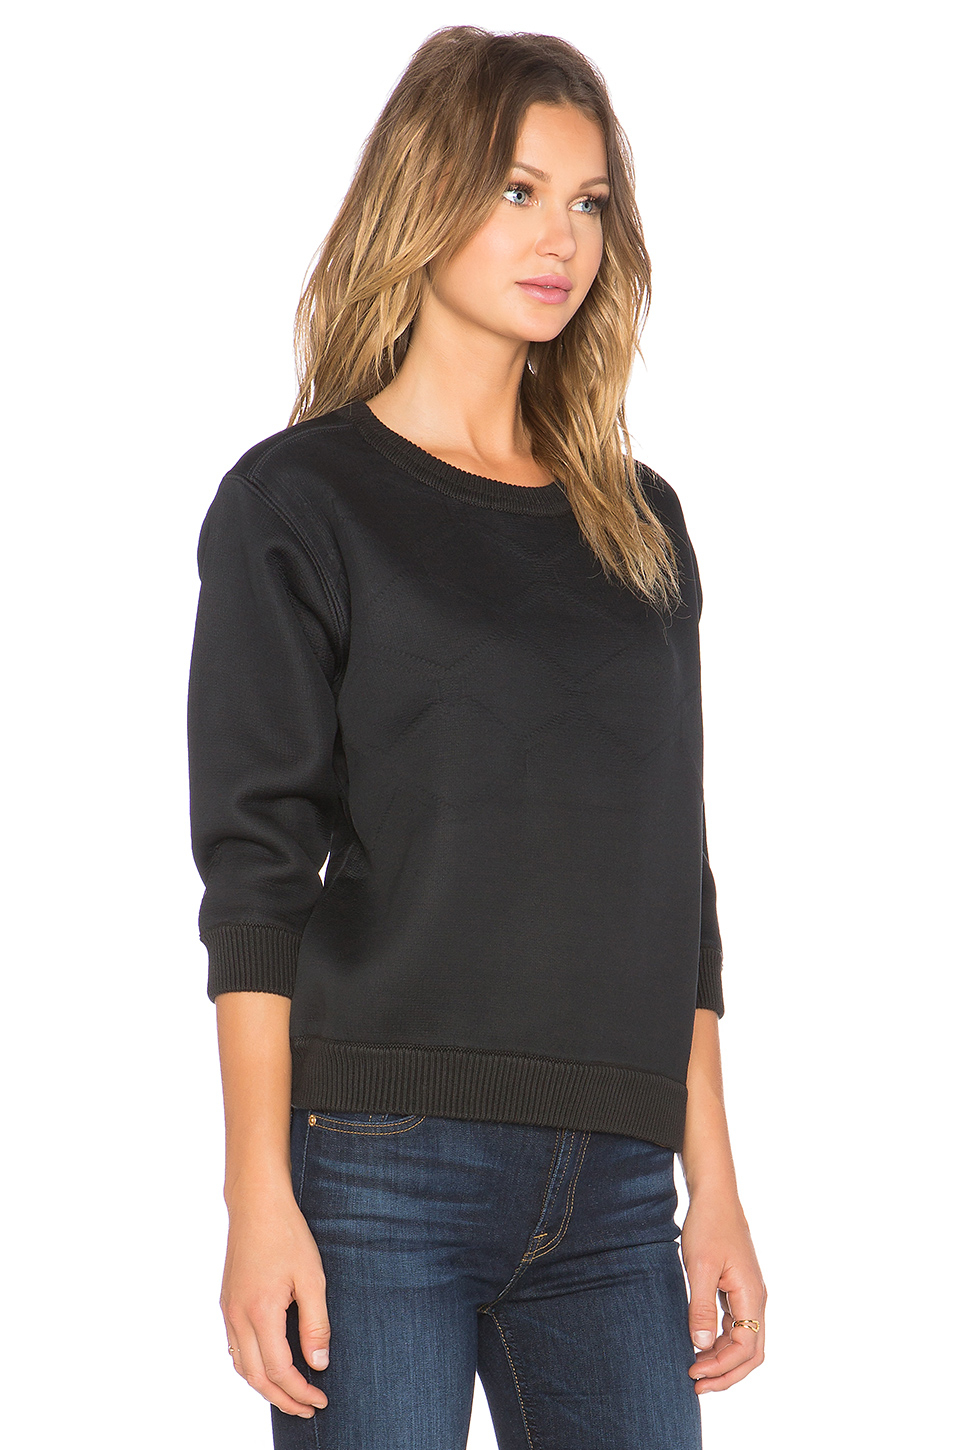 g star raw claro sweater in black lyst. Black Bedroom Furniture Sets. Home Design Ideas